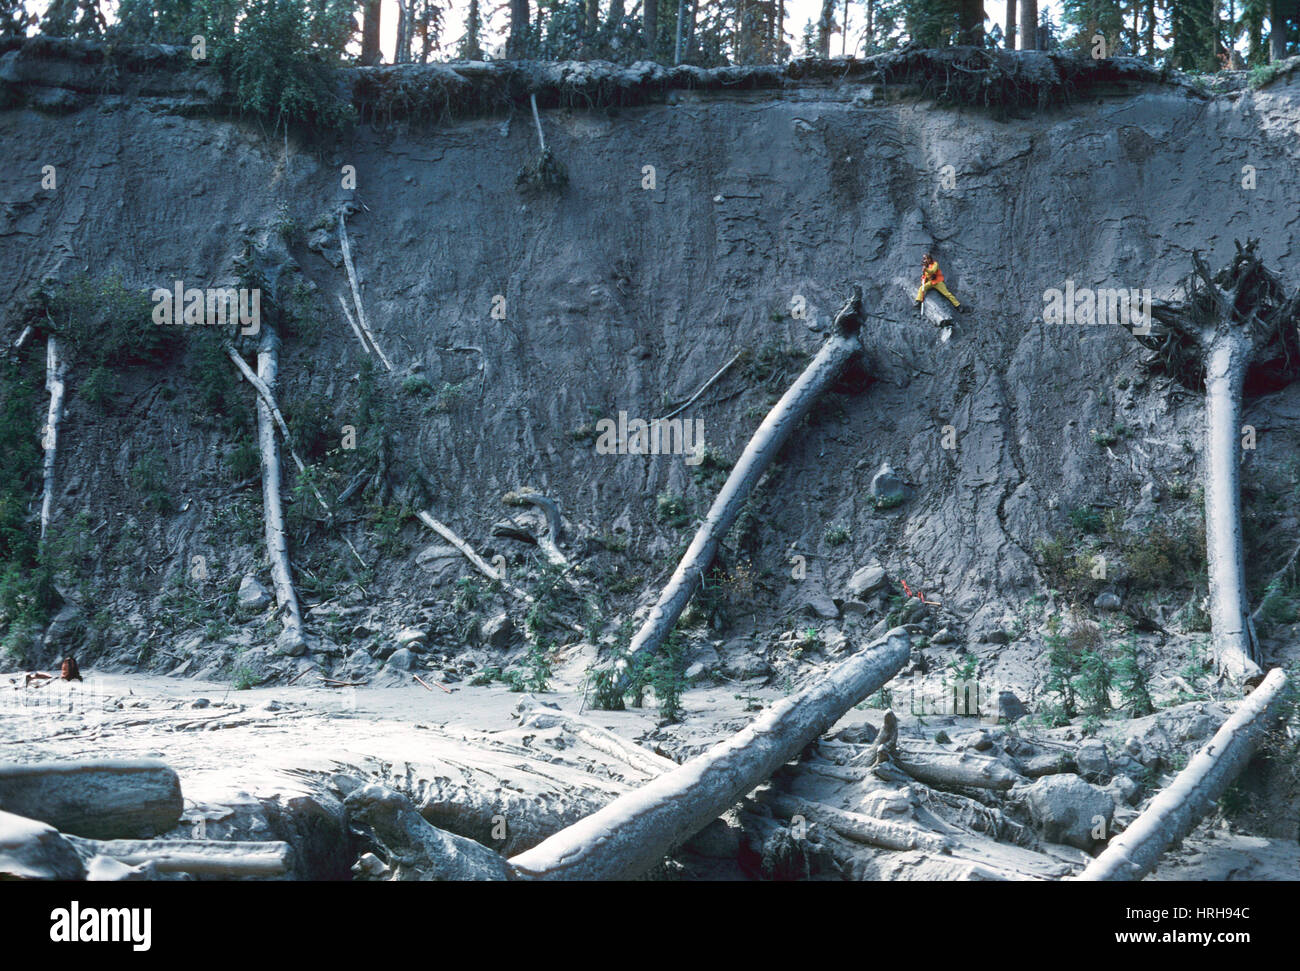 Aftermath of Mount St. Helens - Stock Image